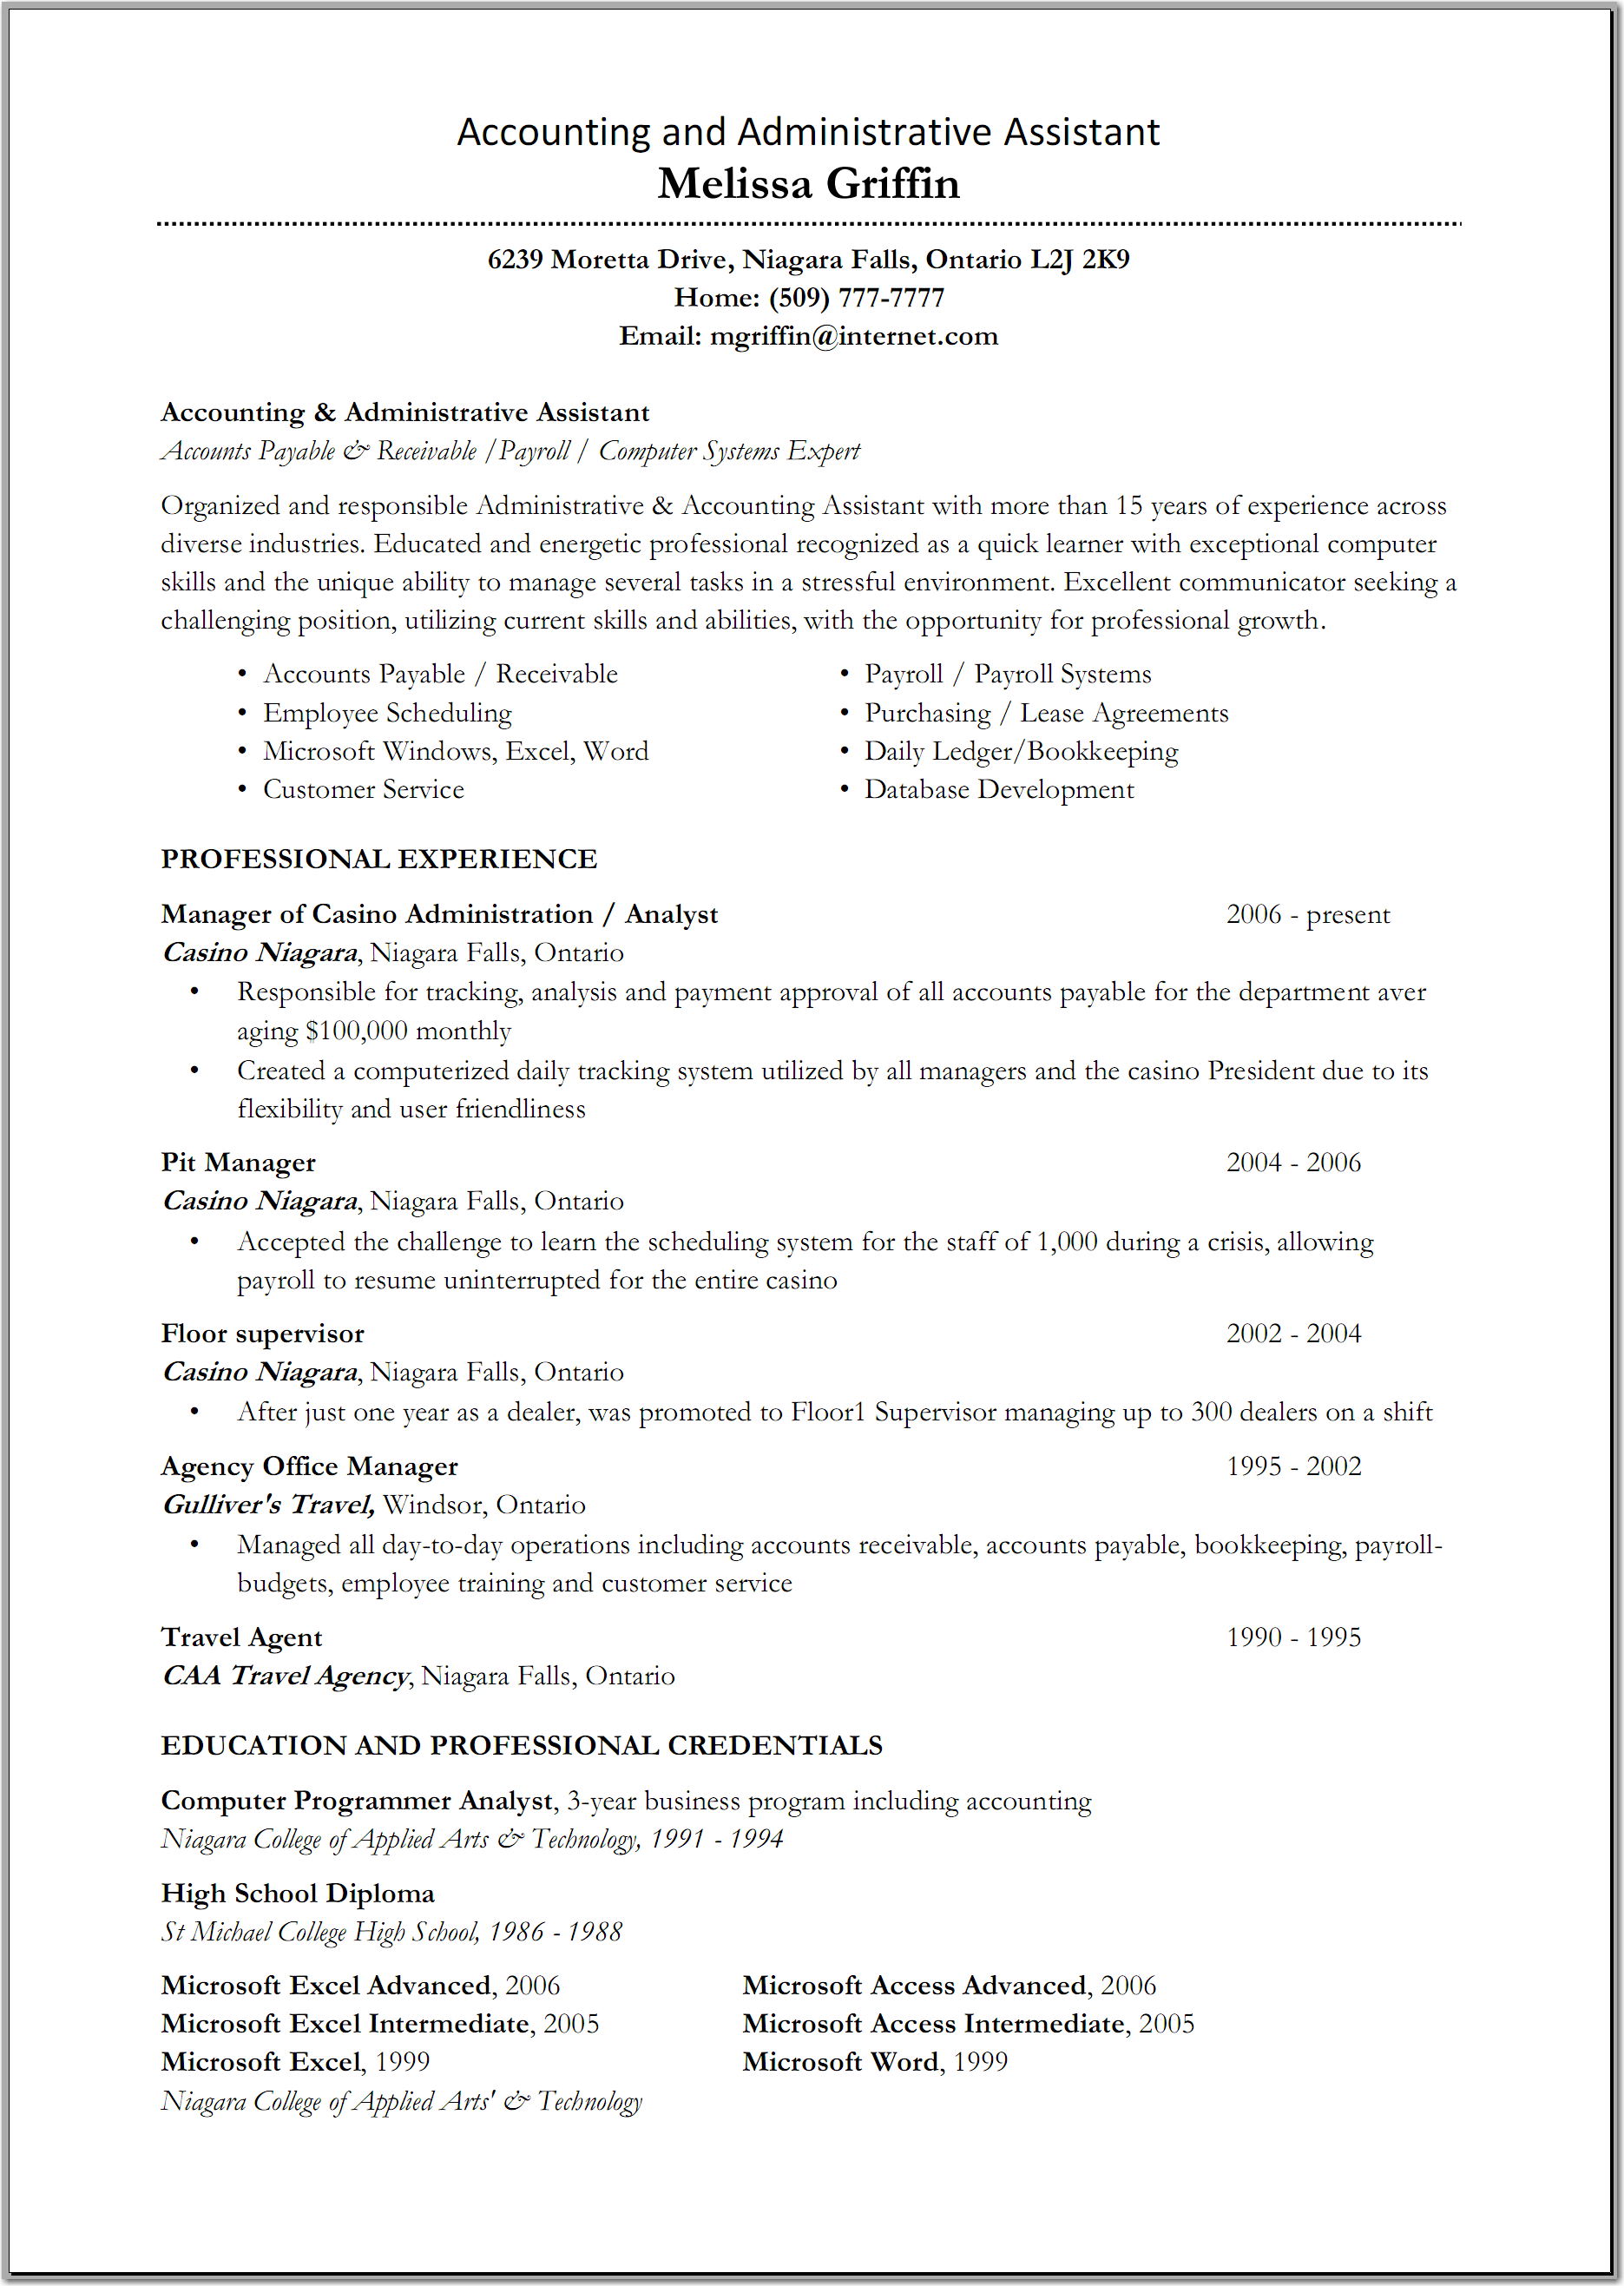 Accounts Receivable Resume Administration Resume Sample Resumecompanion #career